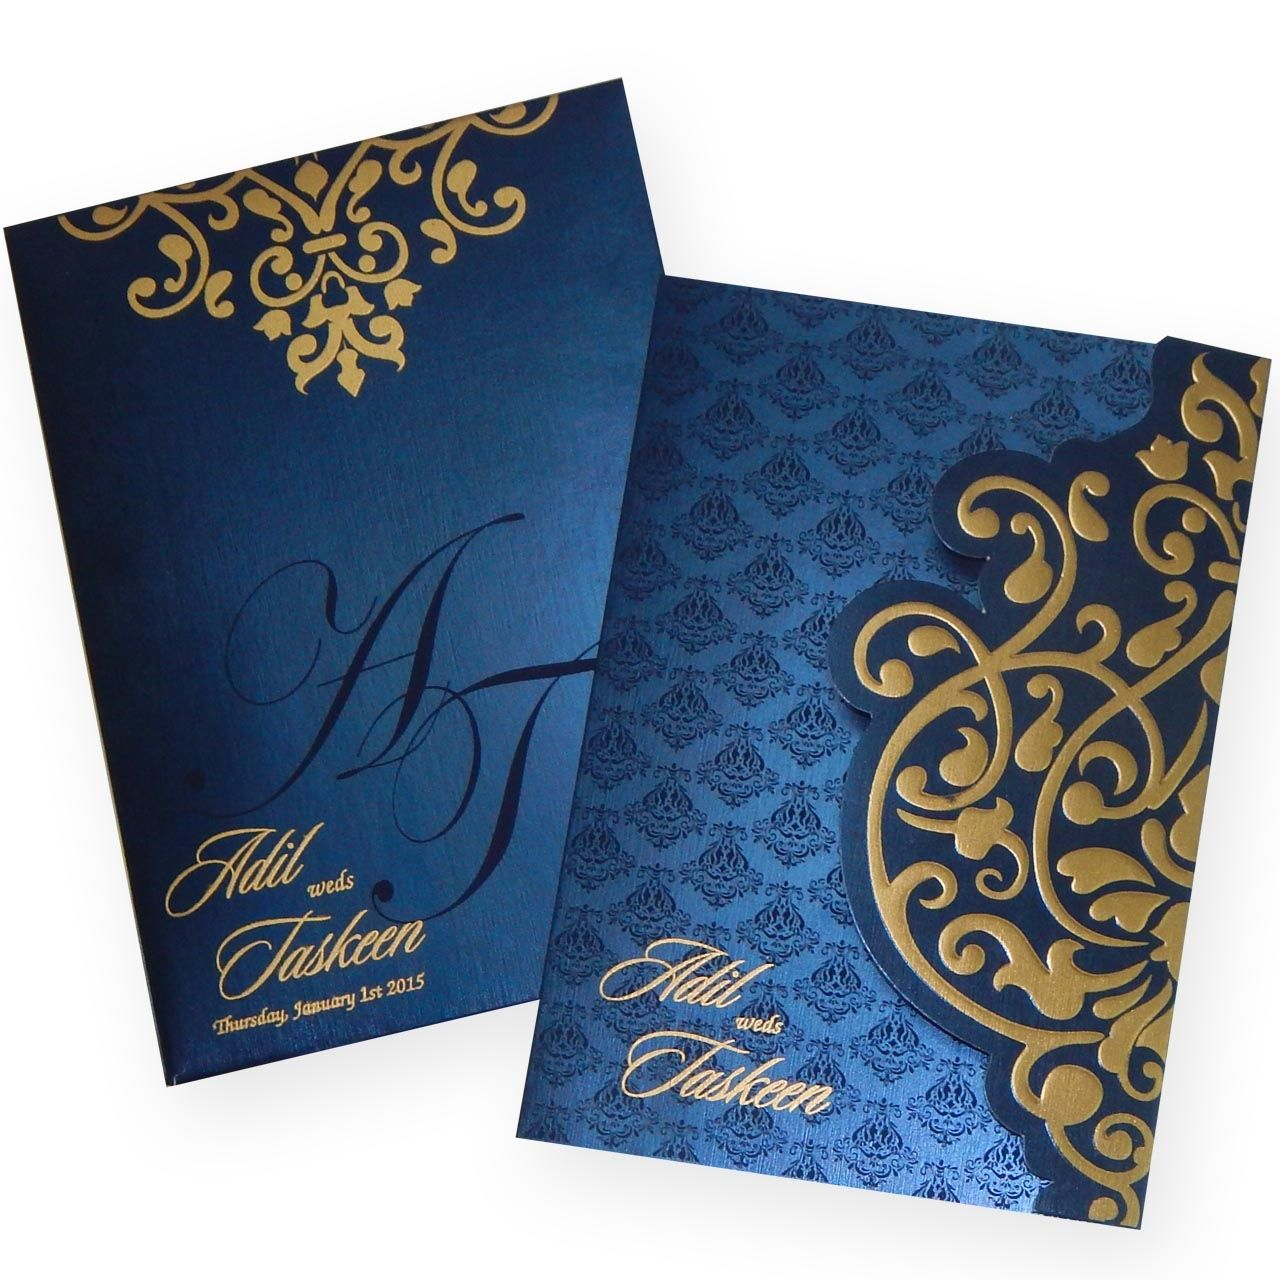 Indian wedding cards | Indian Wedding Cards | Pinterest | Wedding ...